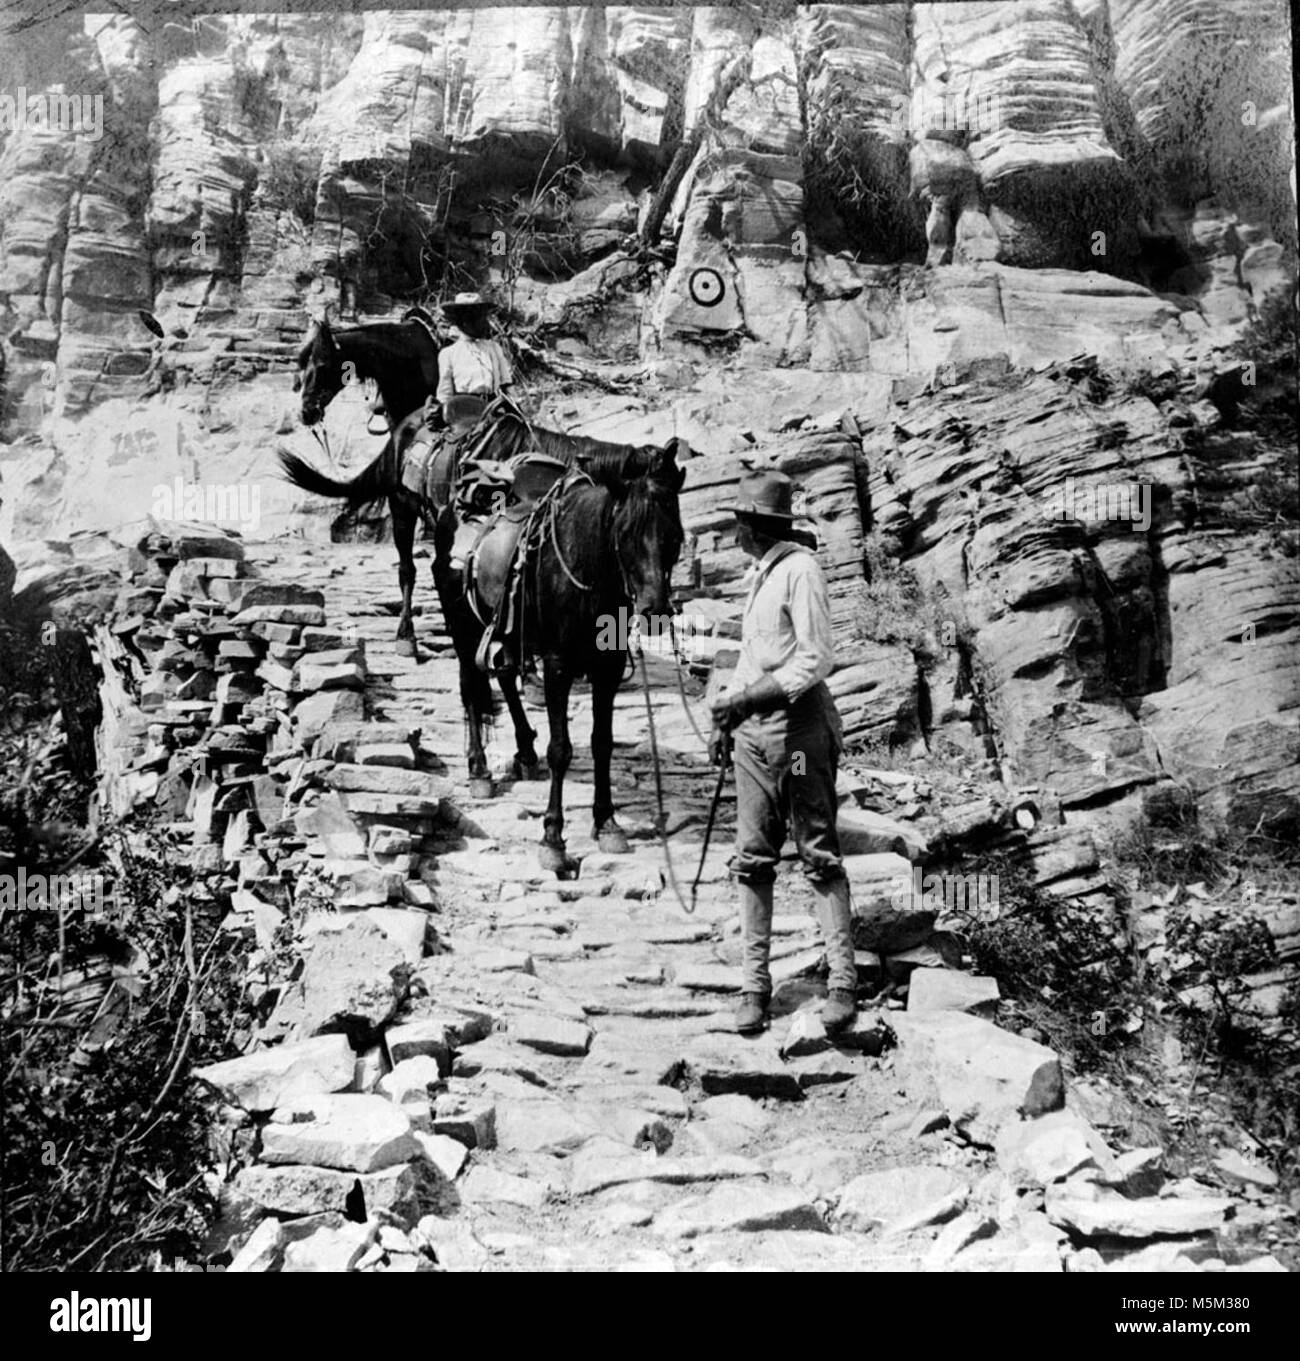 Grand Canyon Grandview Trail cobblestone  . ONE MAN AND ONE WOMAN LEADING THREE HORSES DOWN THE COBBLESTONE SECTION - Stock Image